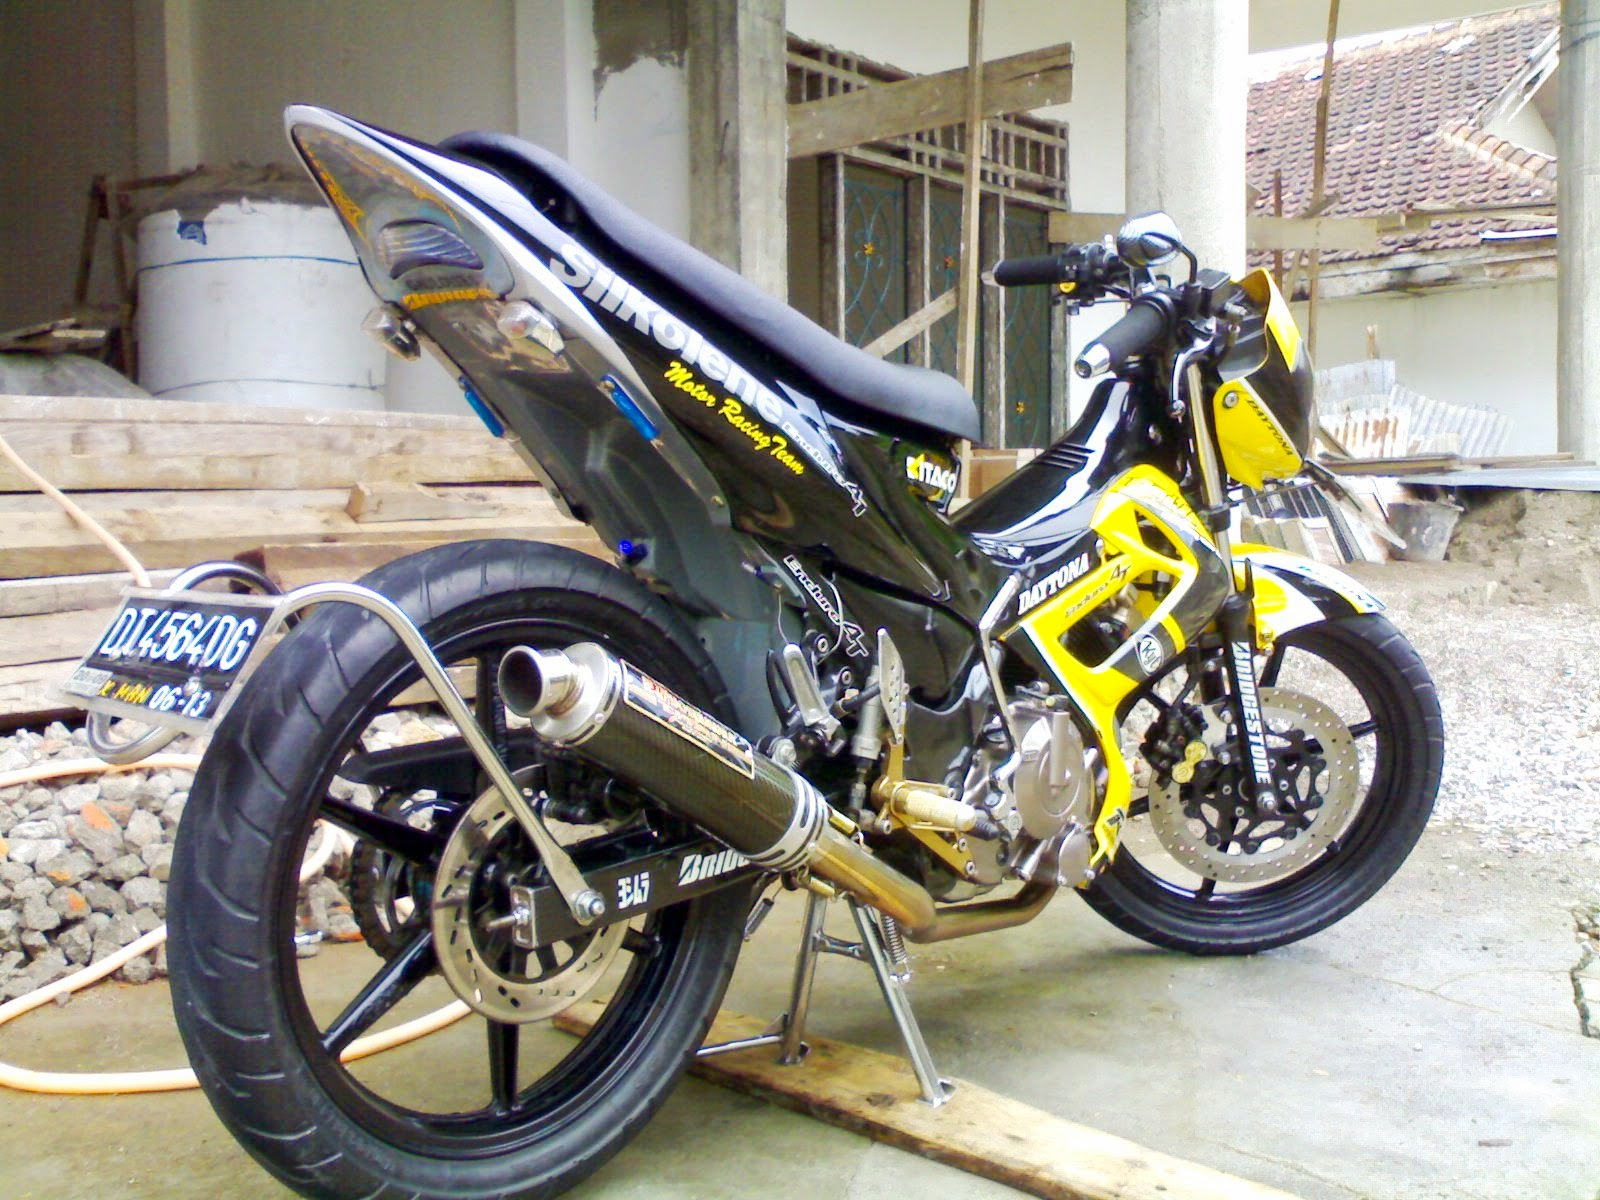 modifikasi satria fu simple image gallery - hcpr